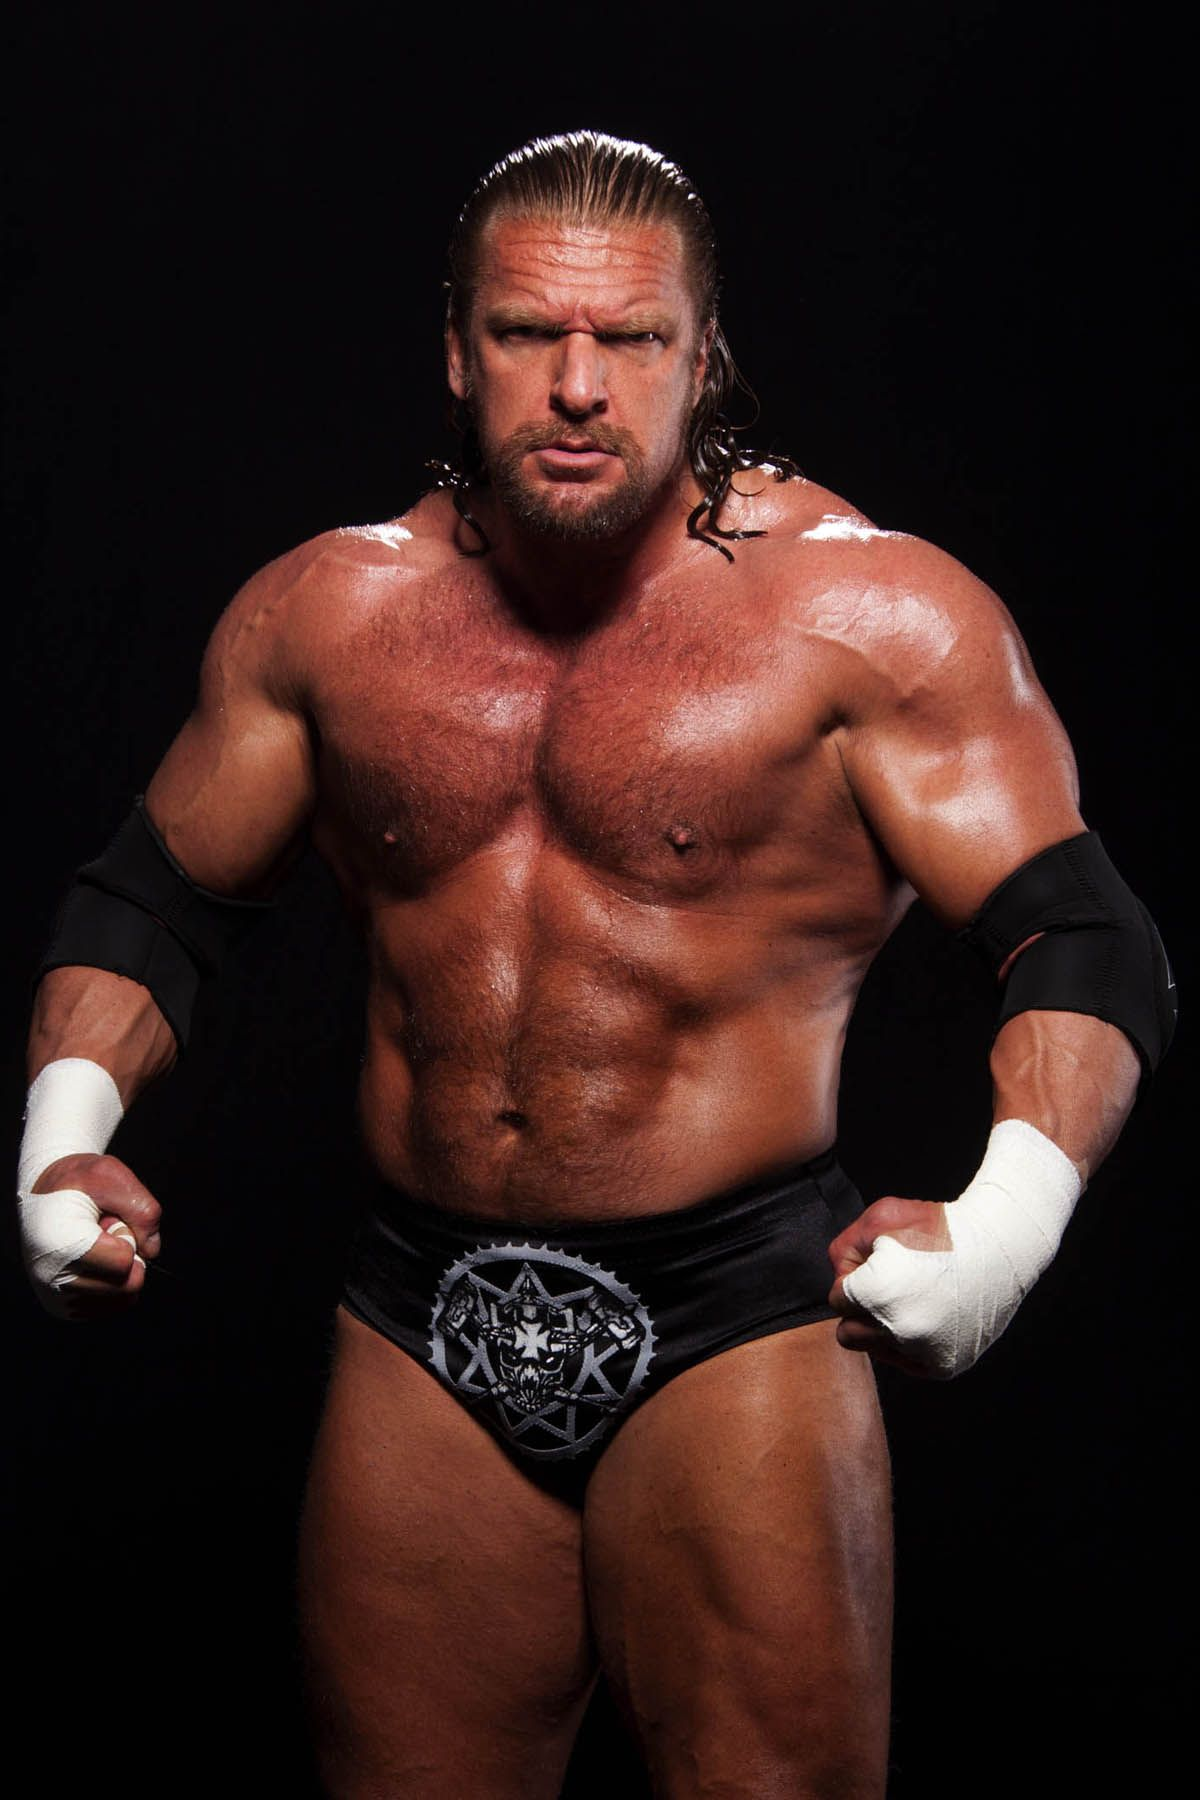 Pin By James Lee On Wallpaper Pinterest Triple H Wwe And Wrestling